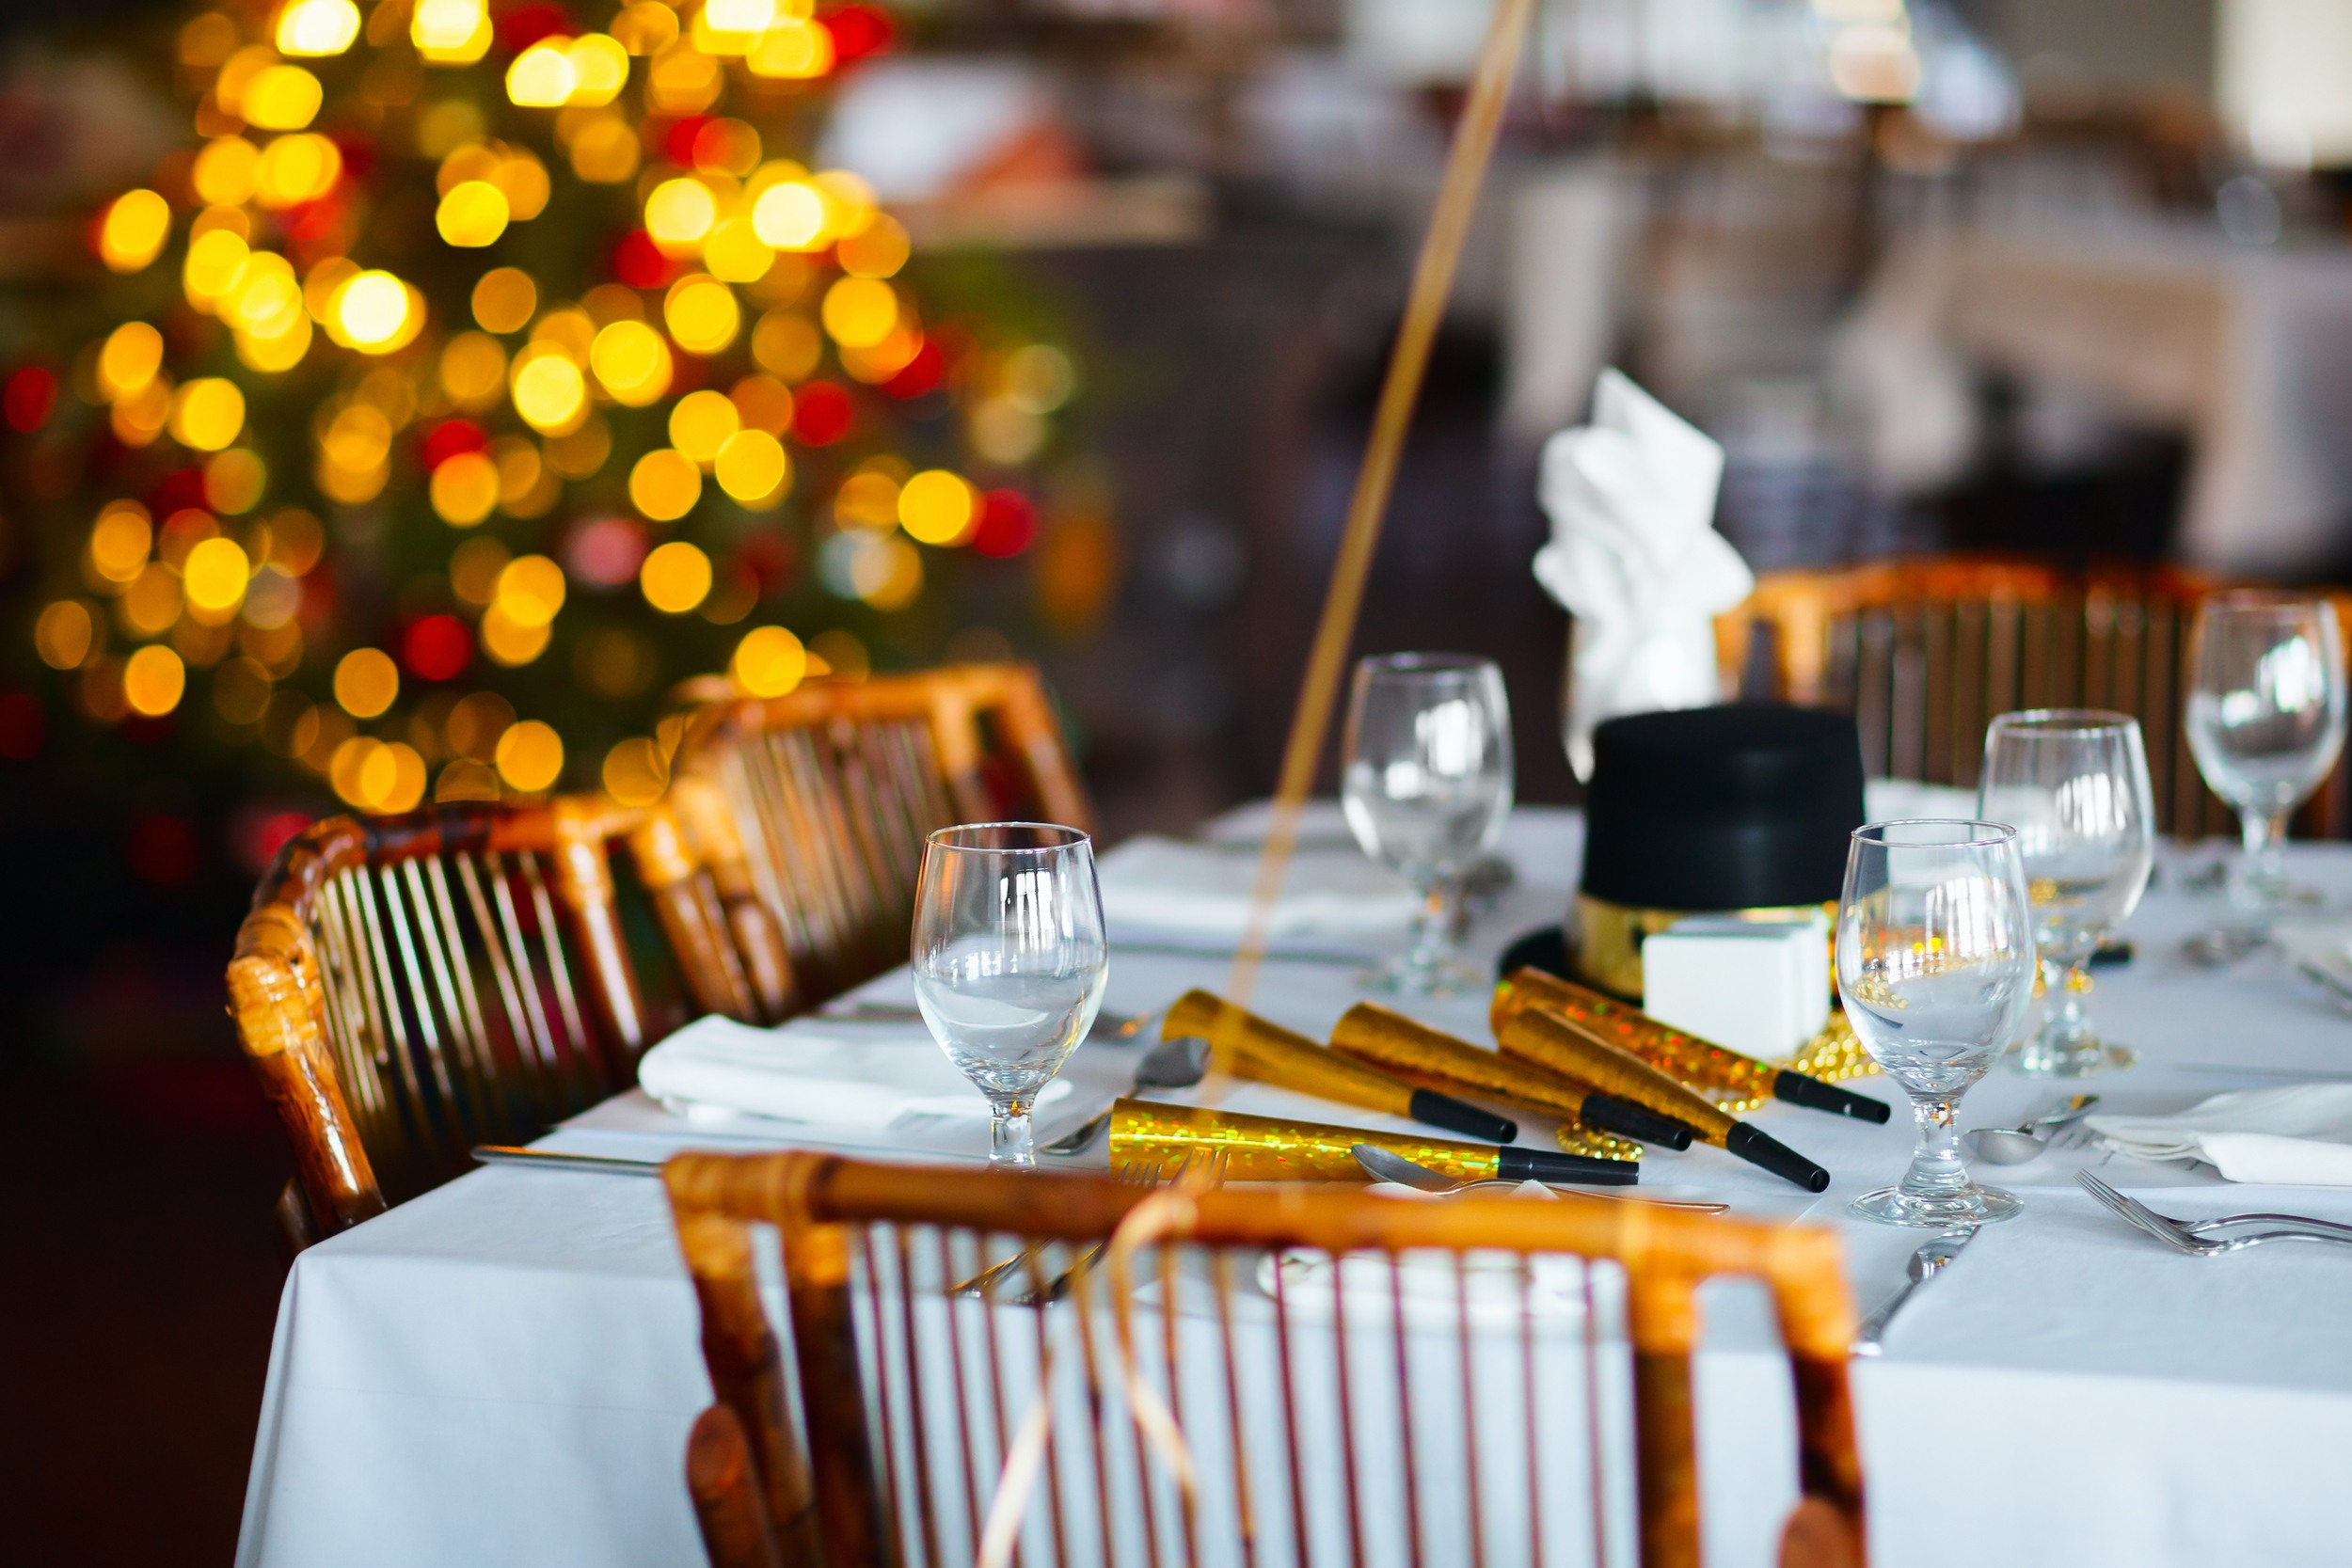 Celebrate the holiday season in Scottsdale with a special meal